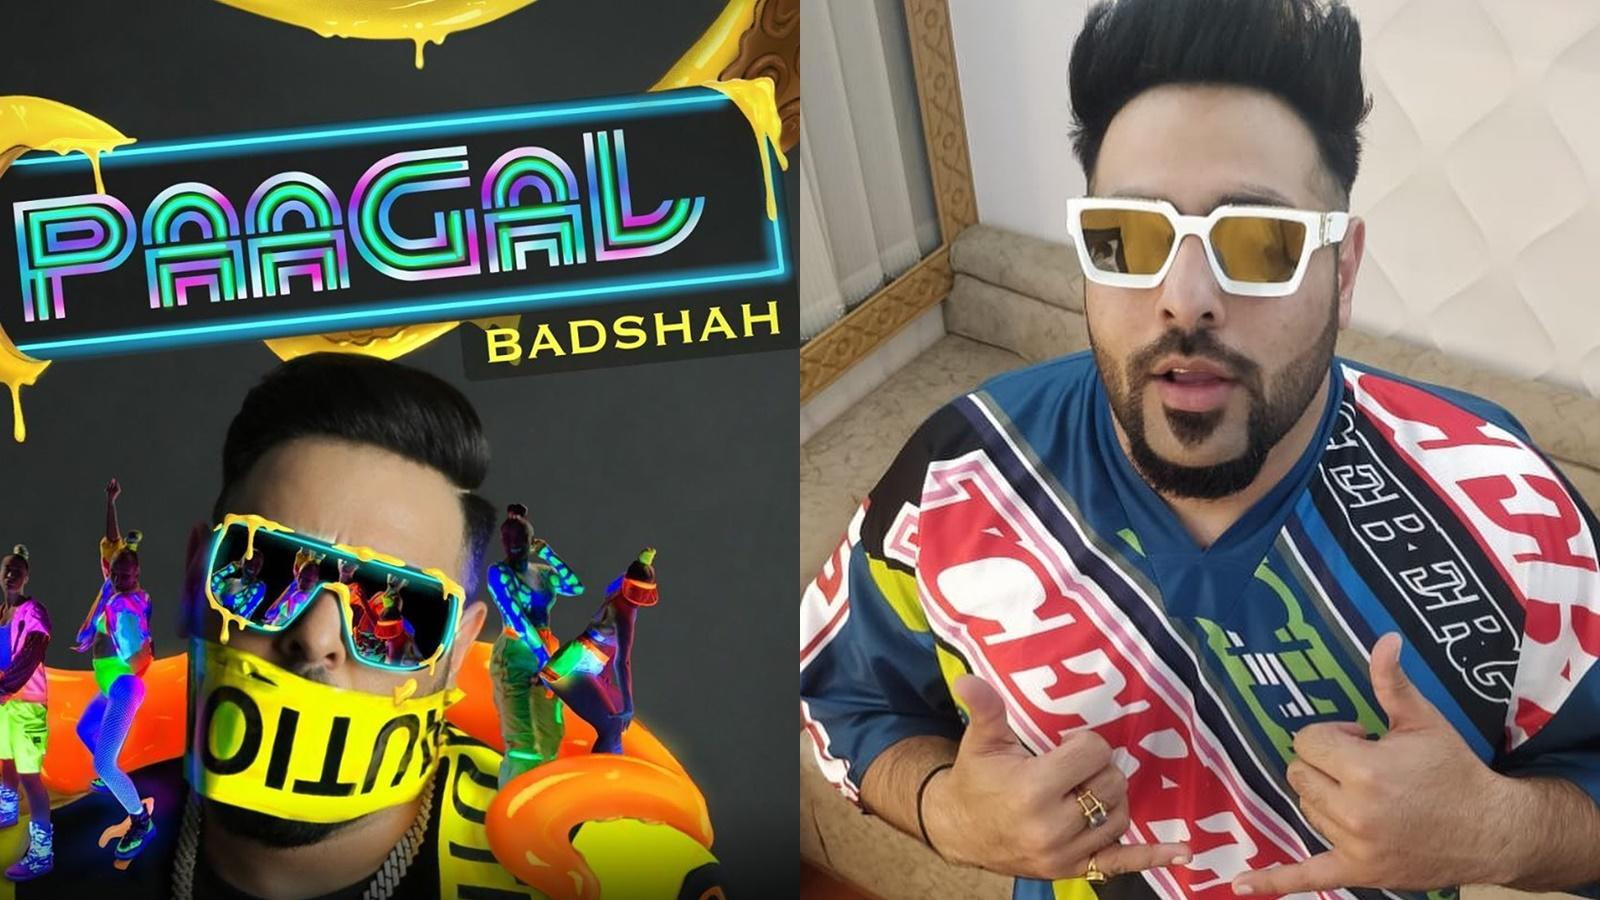 Rapper Badshah becomes first Indian artist to create world record with his  latest track 'Paagal'